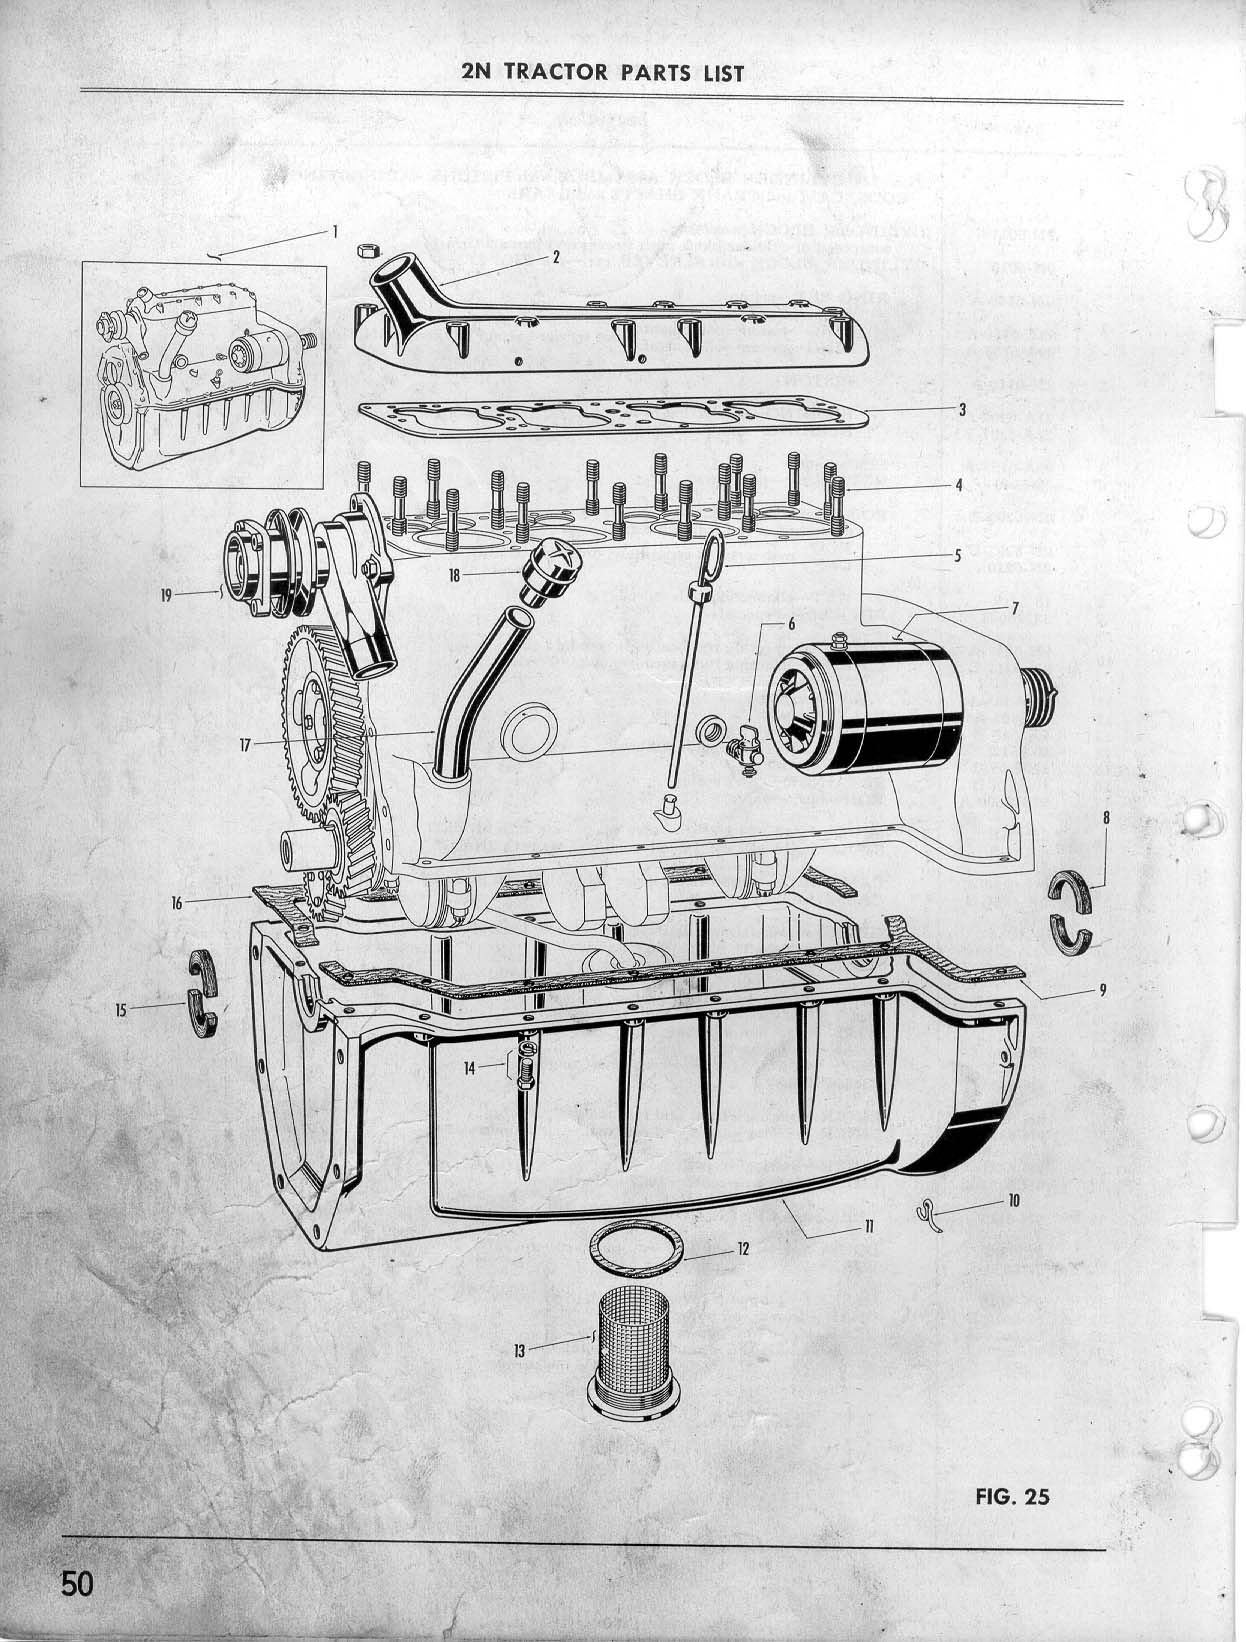 9N Ford Tractor Parts Diagram on Ford 800 Tractor Parts Diagrams